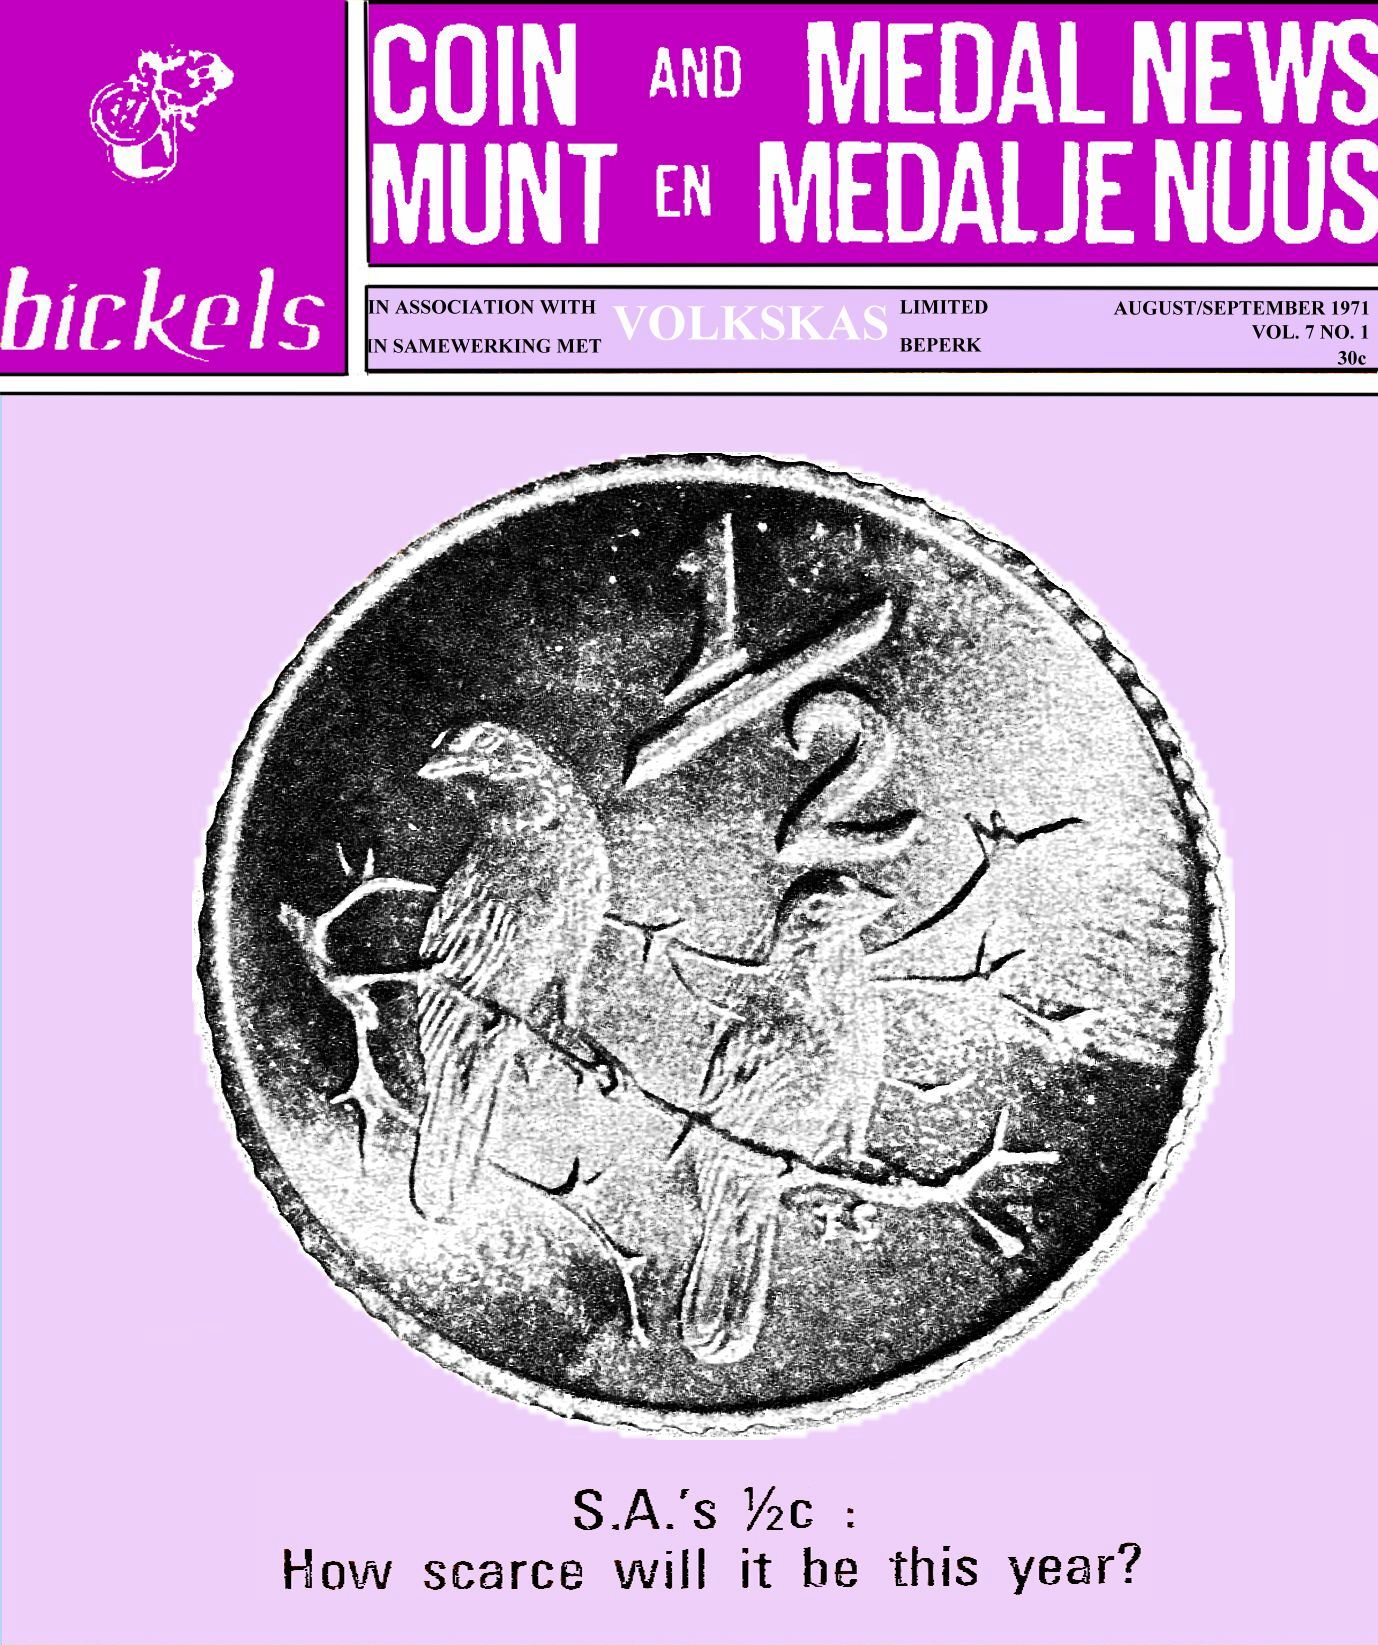 Bickels Coin & Medal News August September 1971 Vol 7 No 1